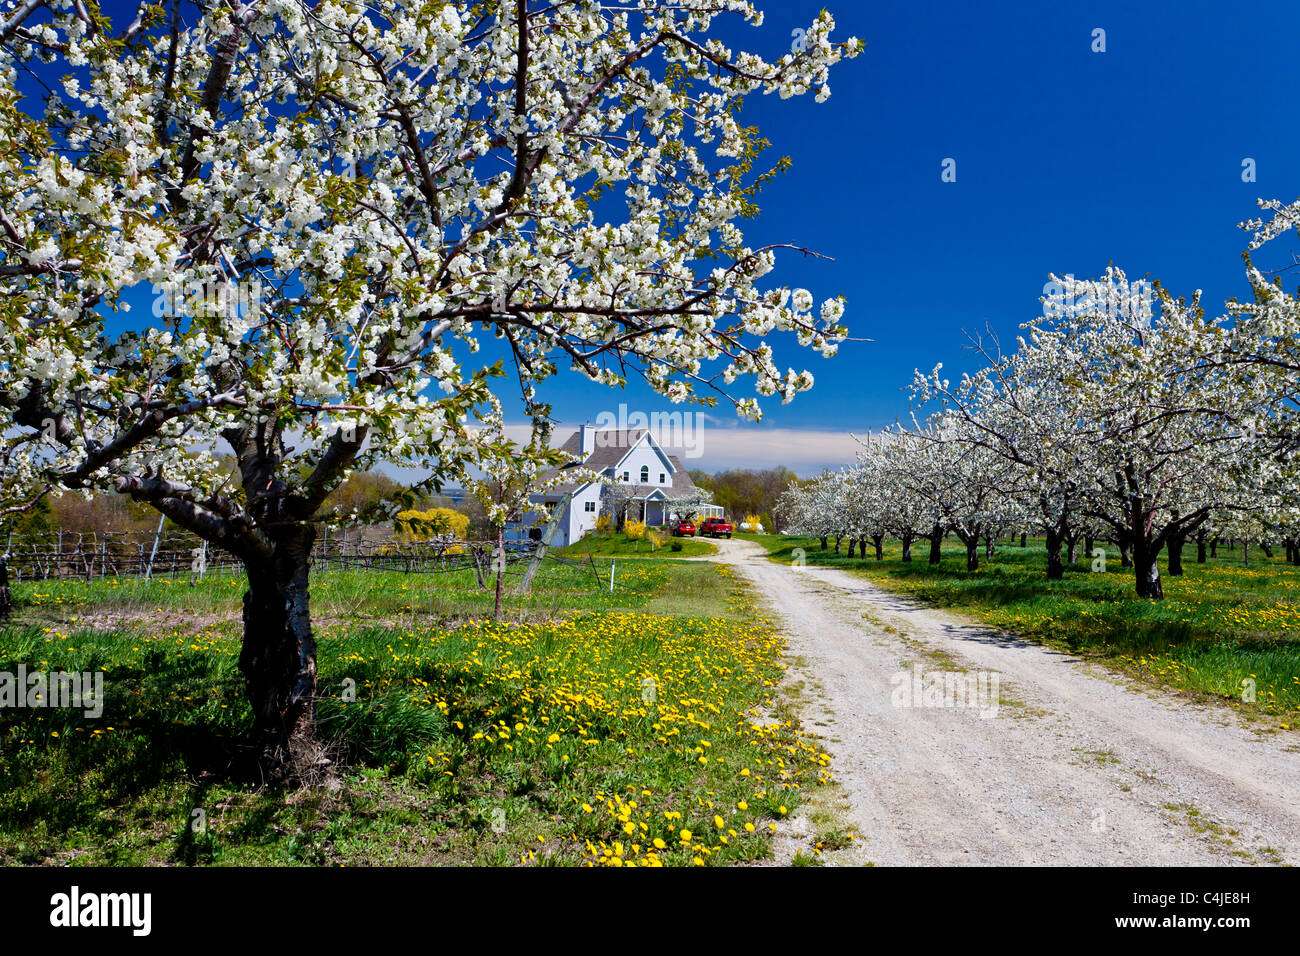 An orchard farm house on the Old Mission Peninsula, Michigan, USA. - Stock Image